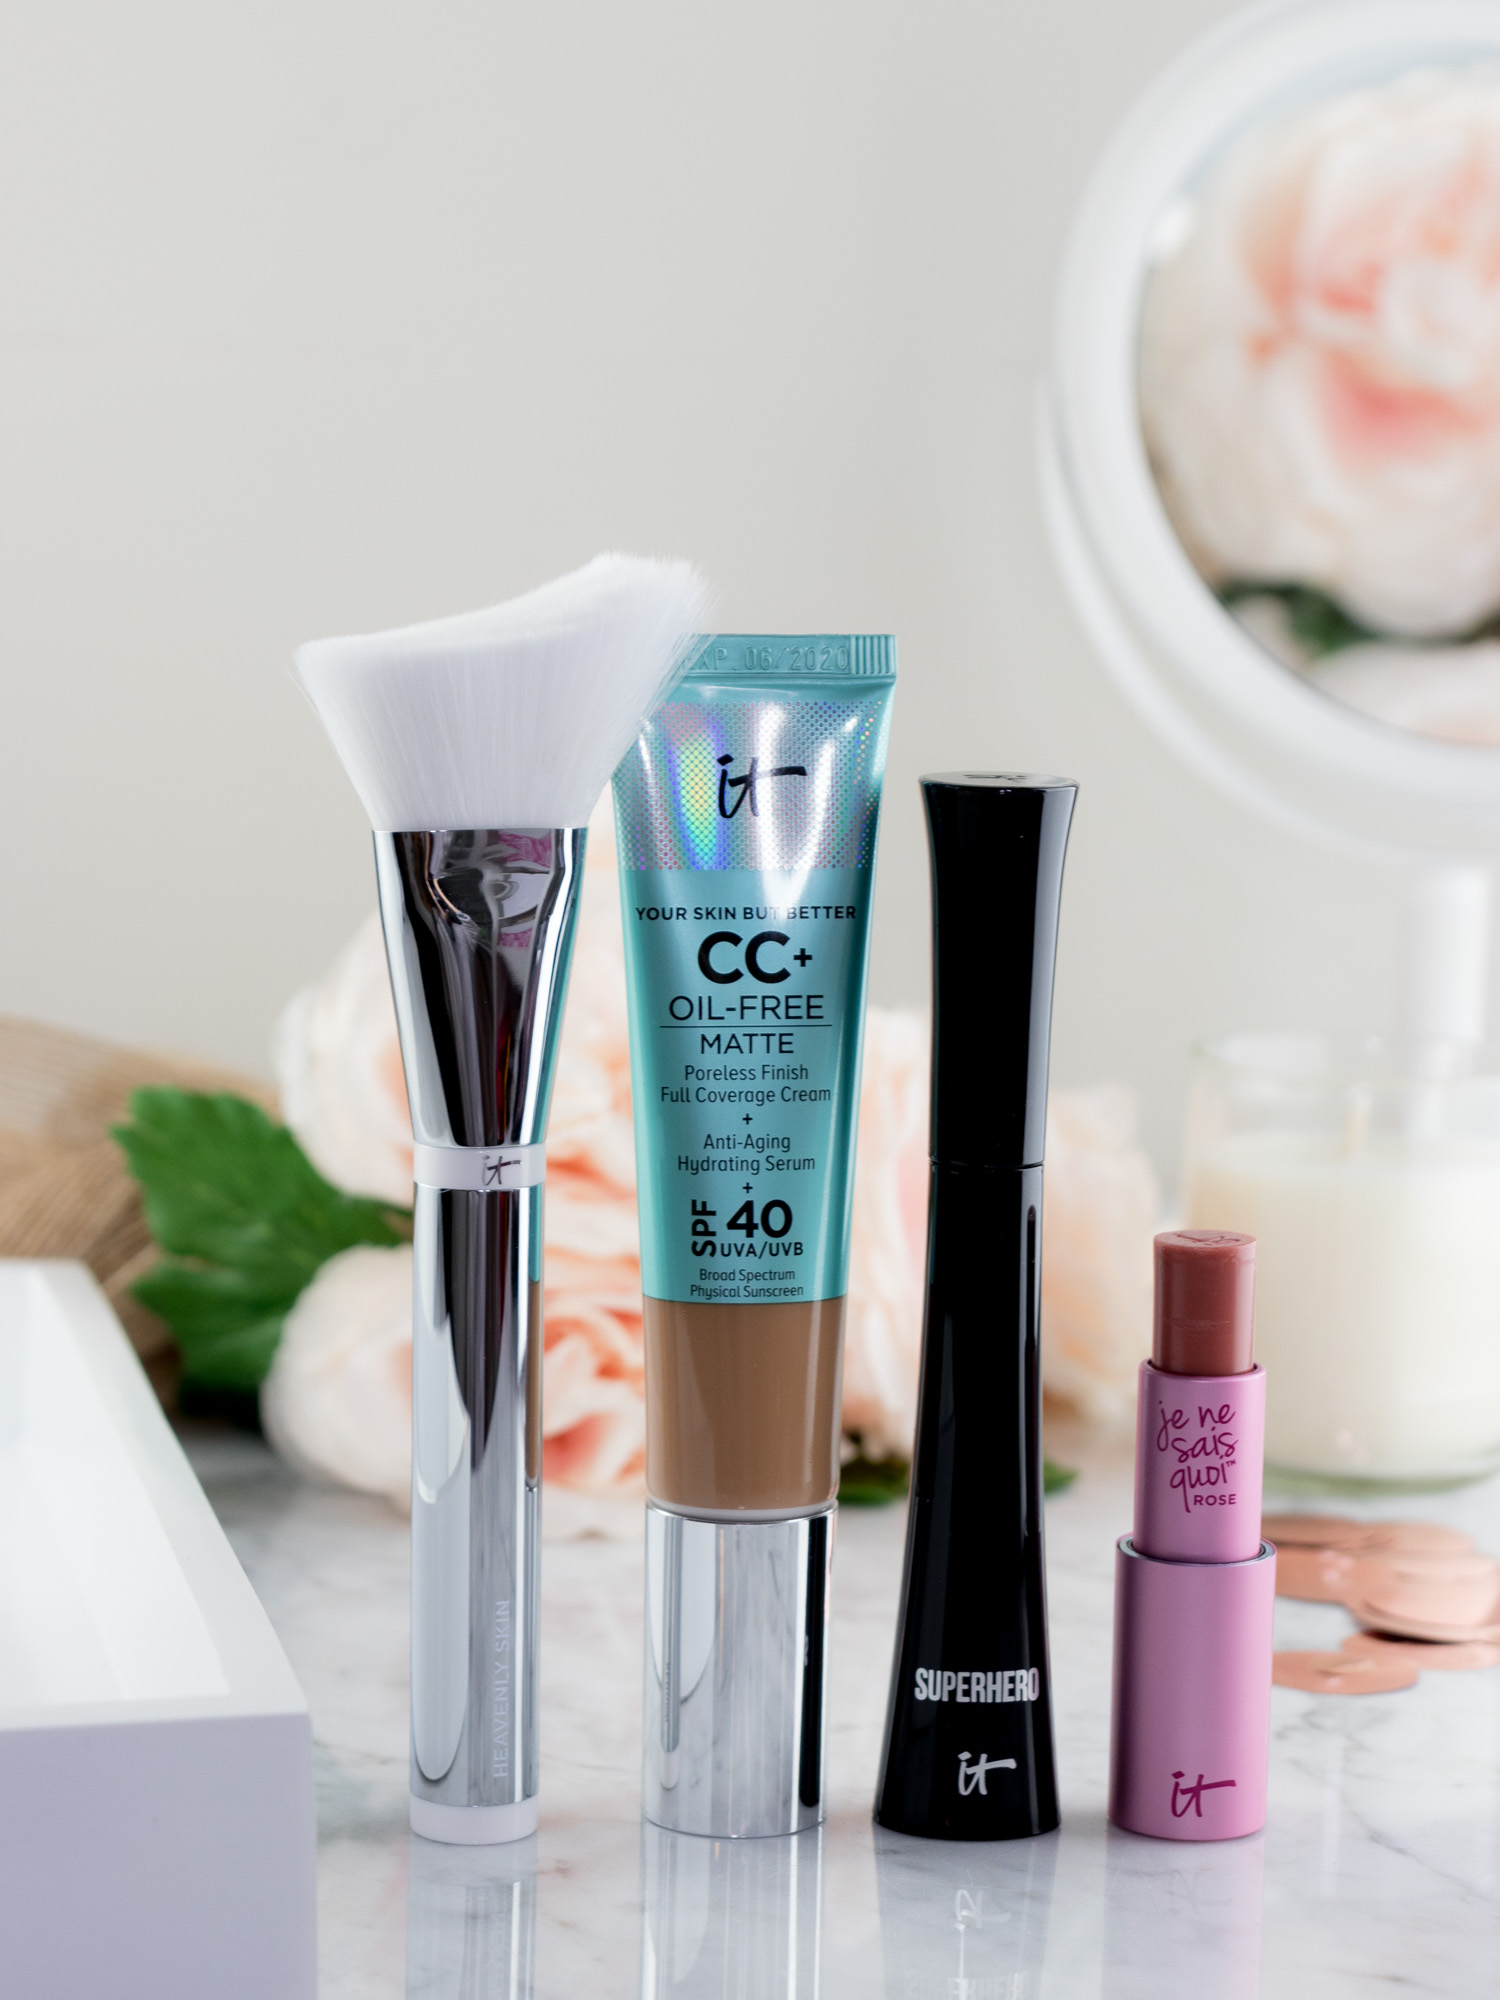 IT Cosmetics' IT's Your Summer Essentials! 4-Piece Collection